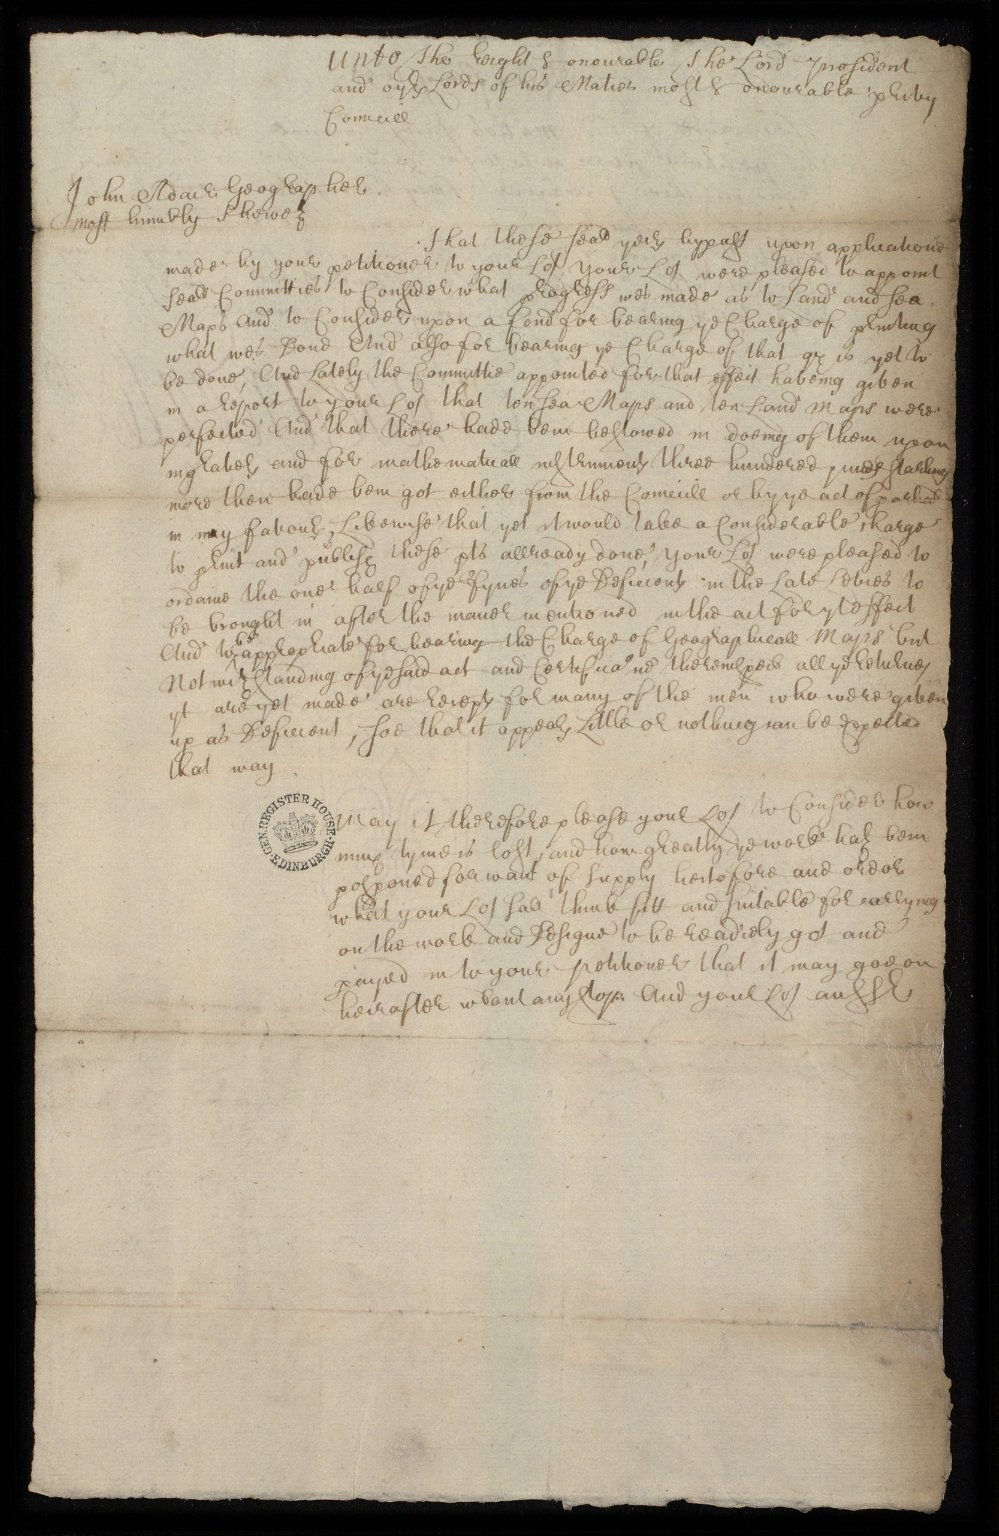 [Petition of John Adair to the Privy Council concerning delays in his work and requesting payments] [1 of 2]